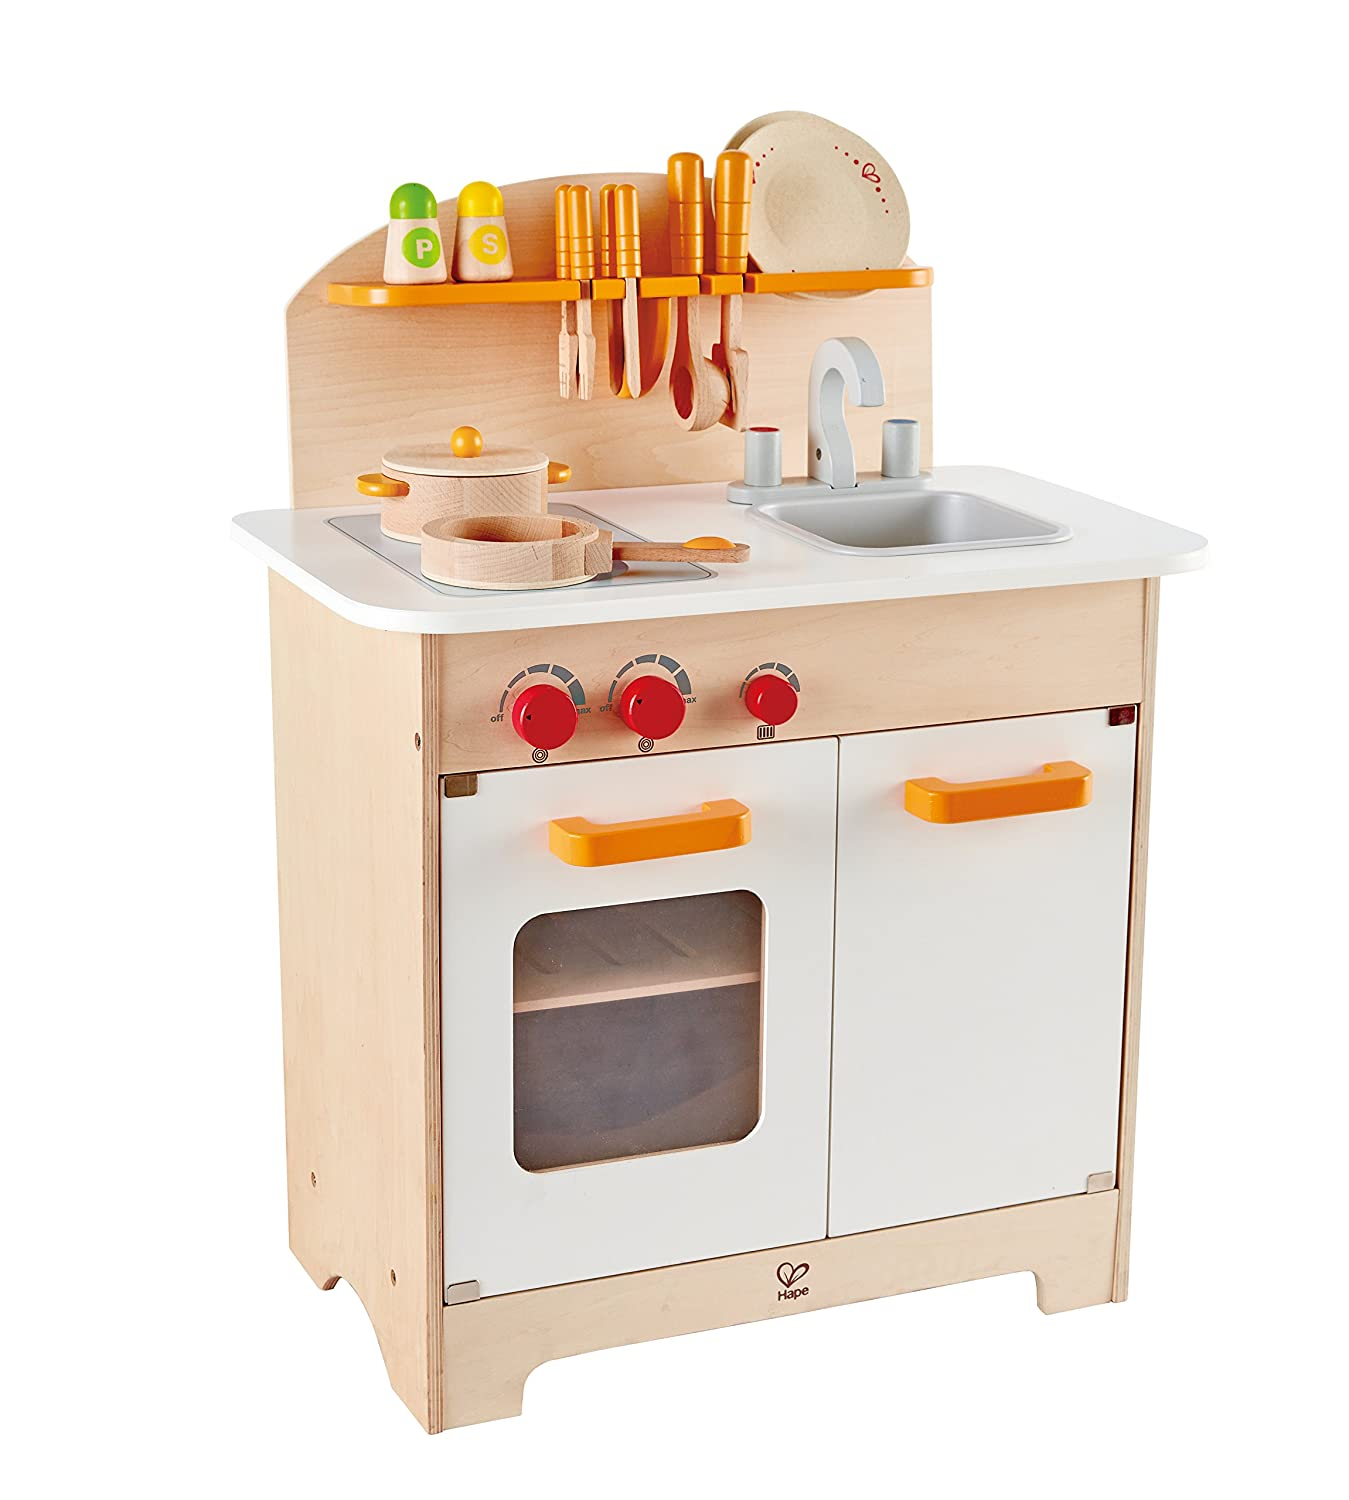 Hape E8116 Gourmet Chef Kitchen And Cookware Wooden Play Set Kids Pretend Play Ebay